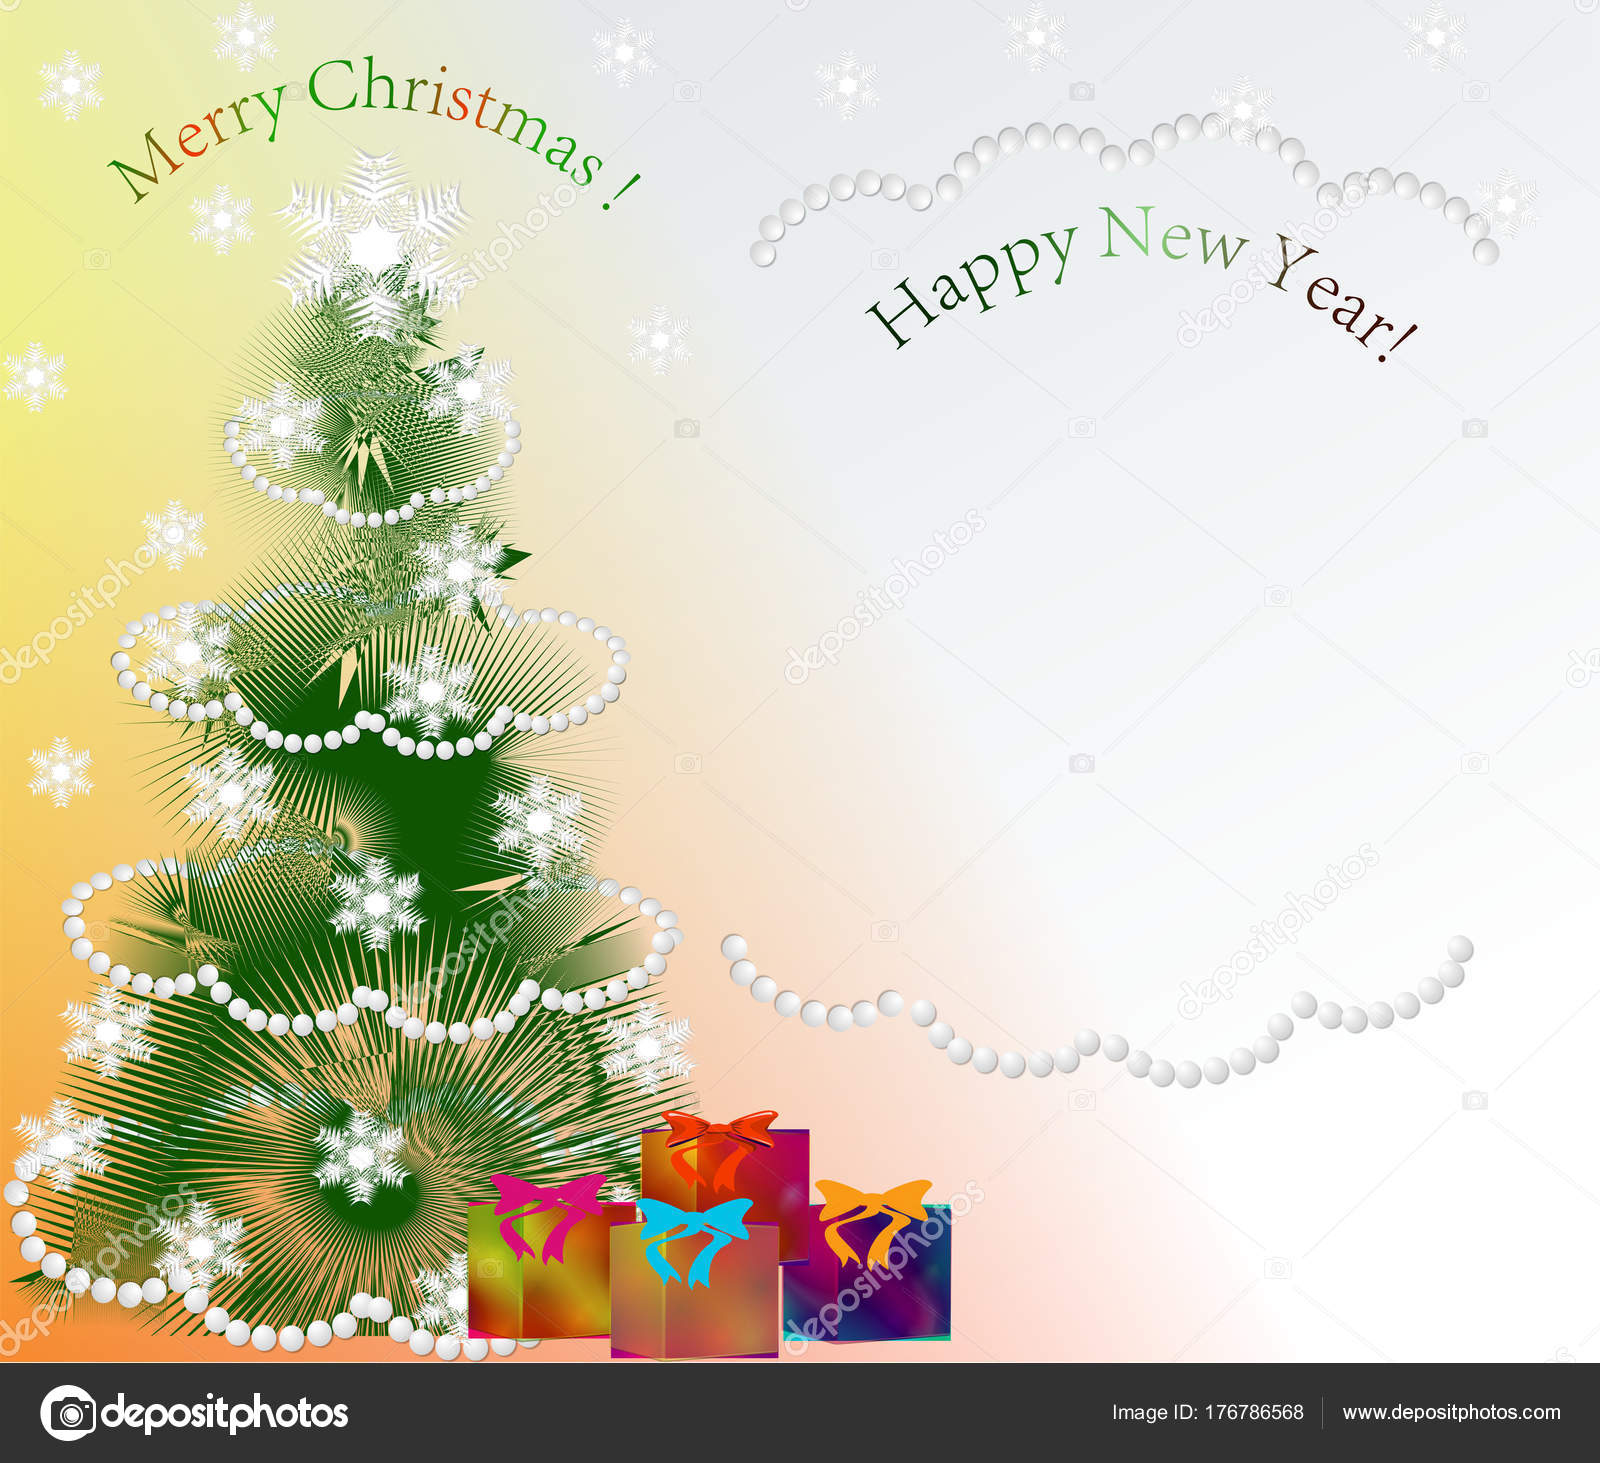 Abstract Image Greeting Card Happy New Year Merry Christmas — Stock ...